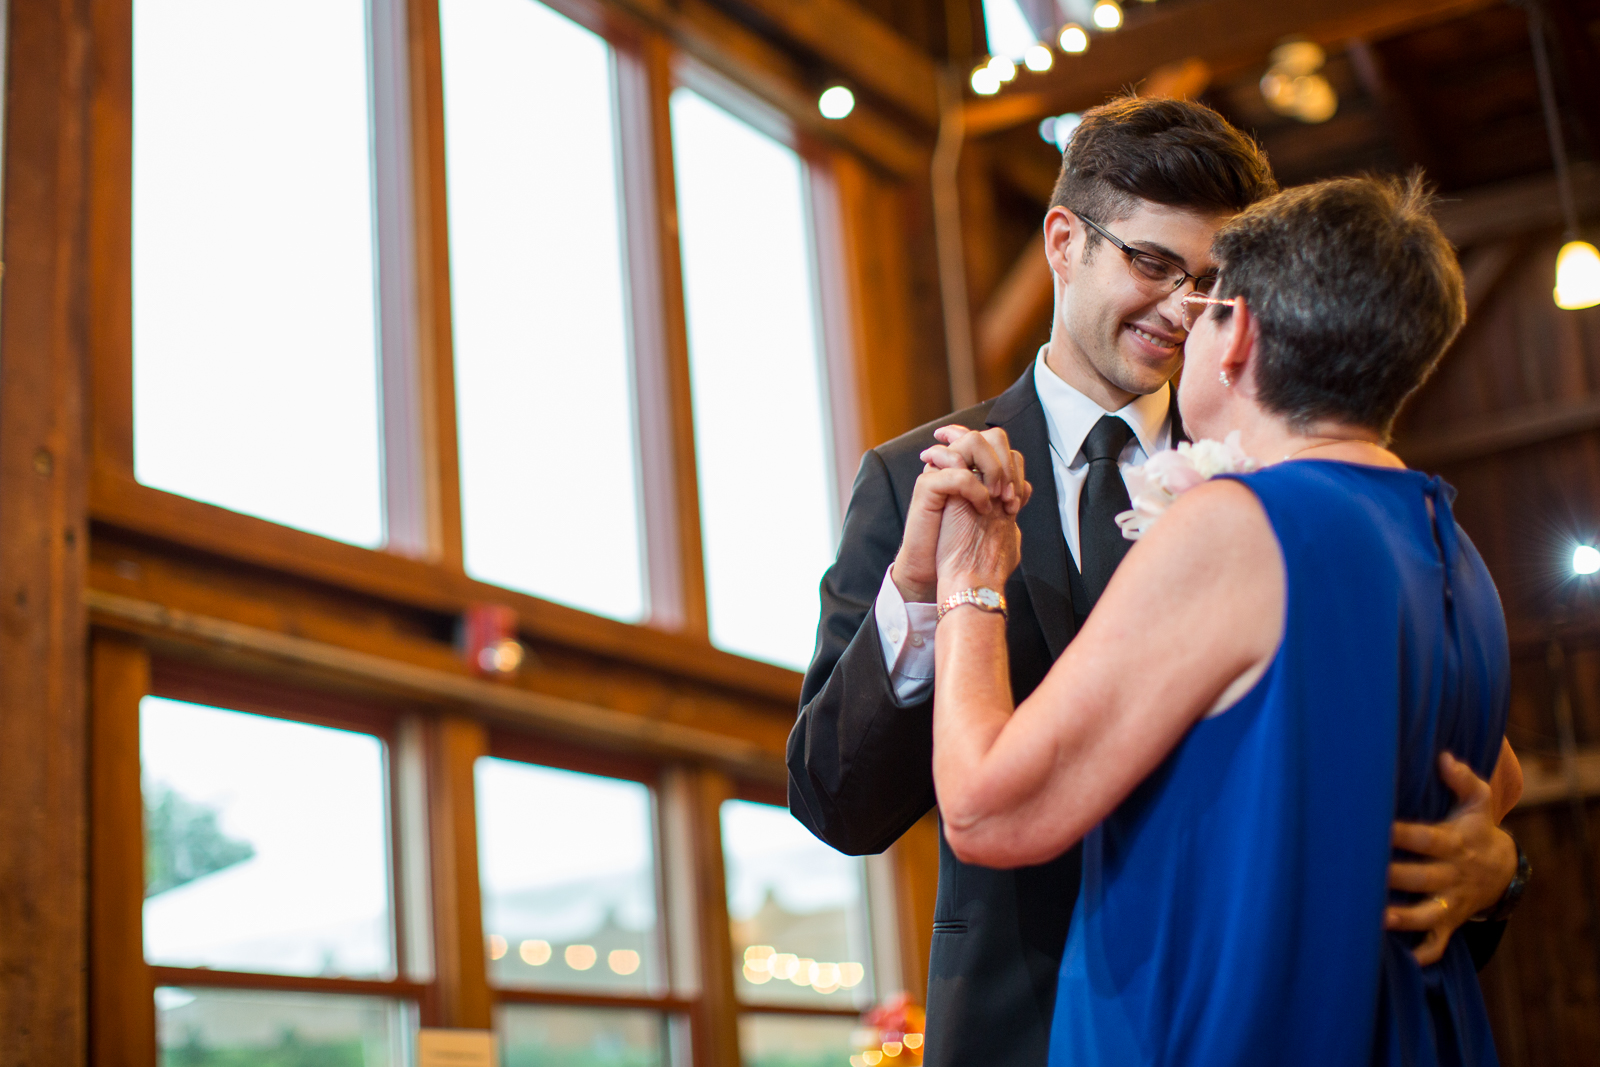 Four_Wings_Photography_Wedding_Red_Barn_at_Hampshire_College-40.jpg